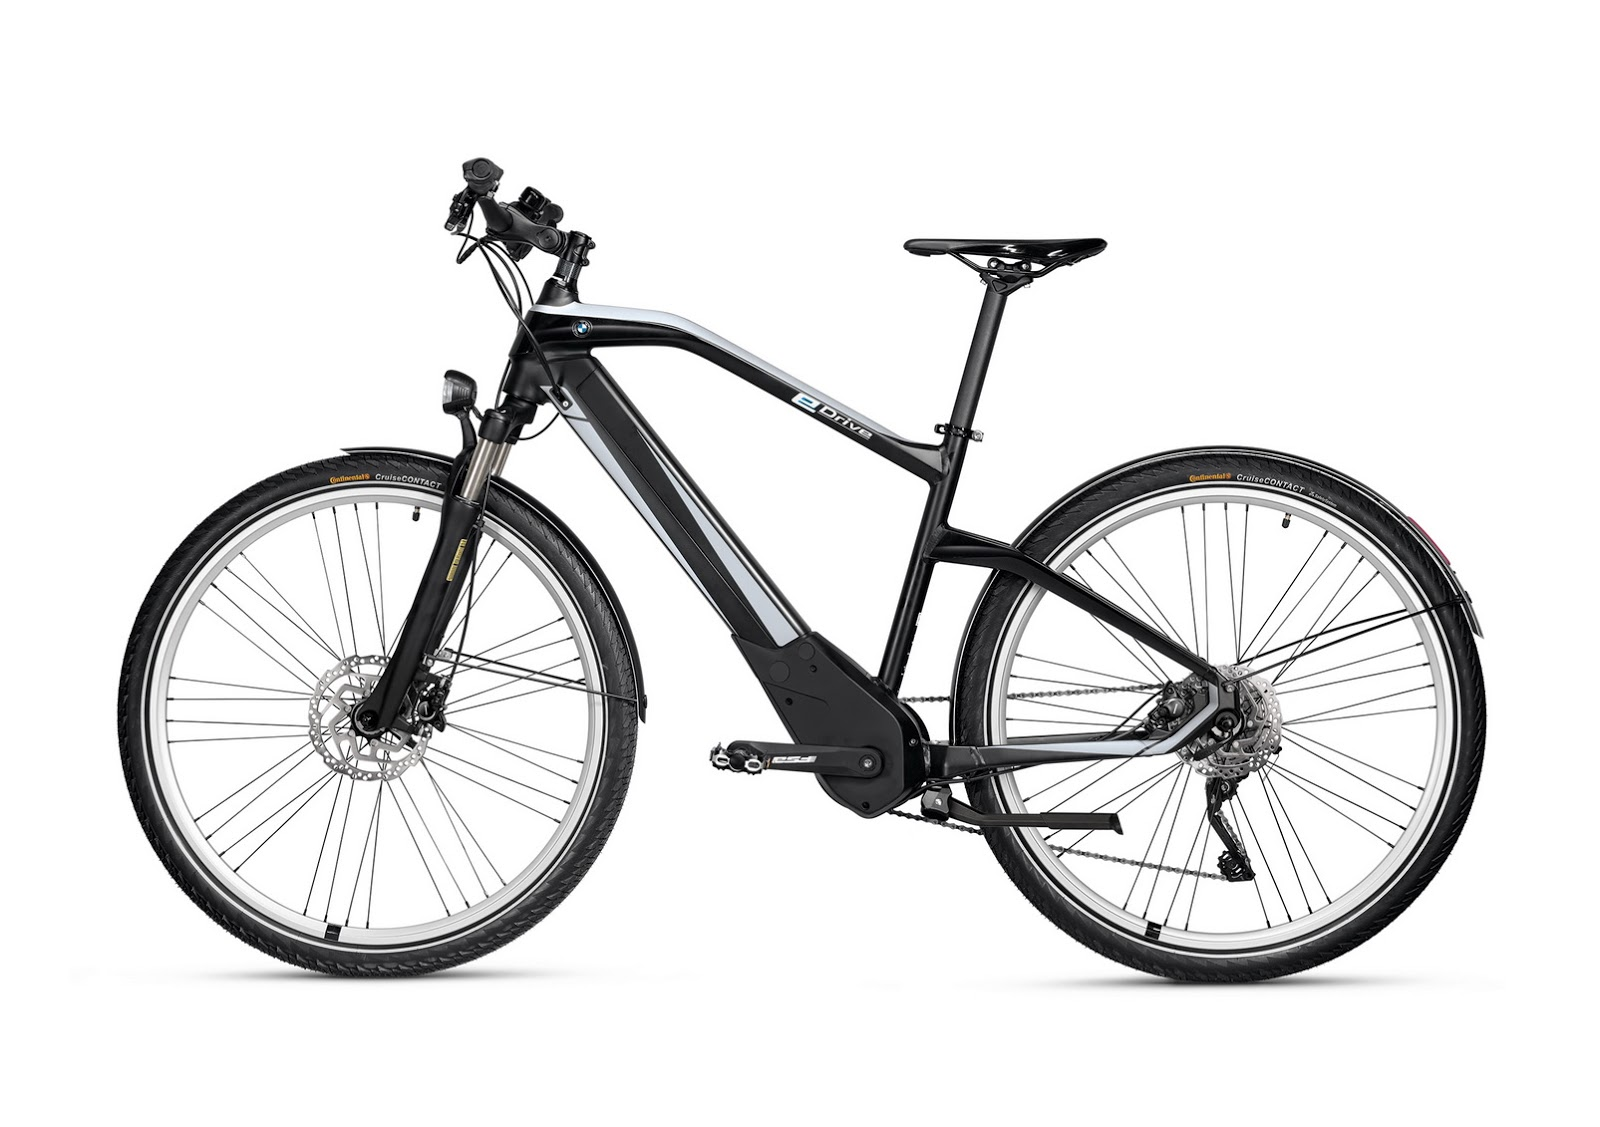 BMW_Active_Hybrid_e-bike_06